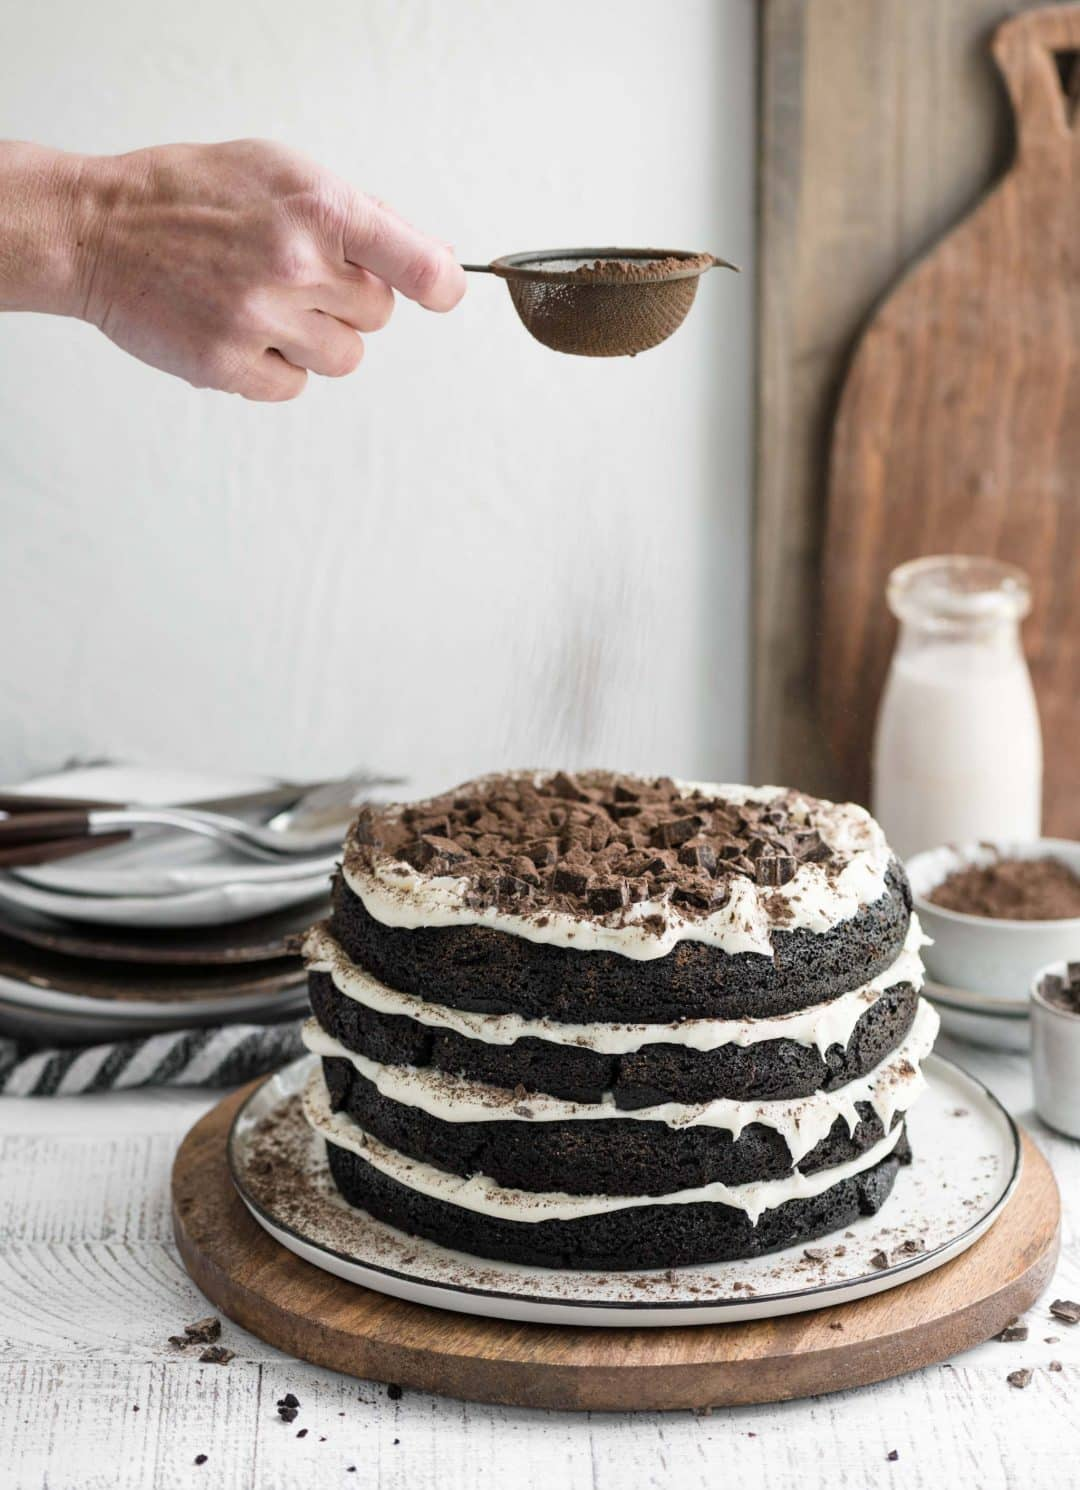 mocha latte cake with a dusting of chocolate powder